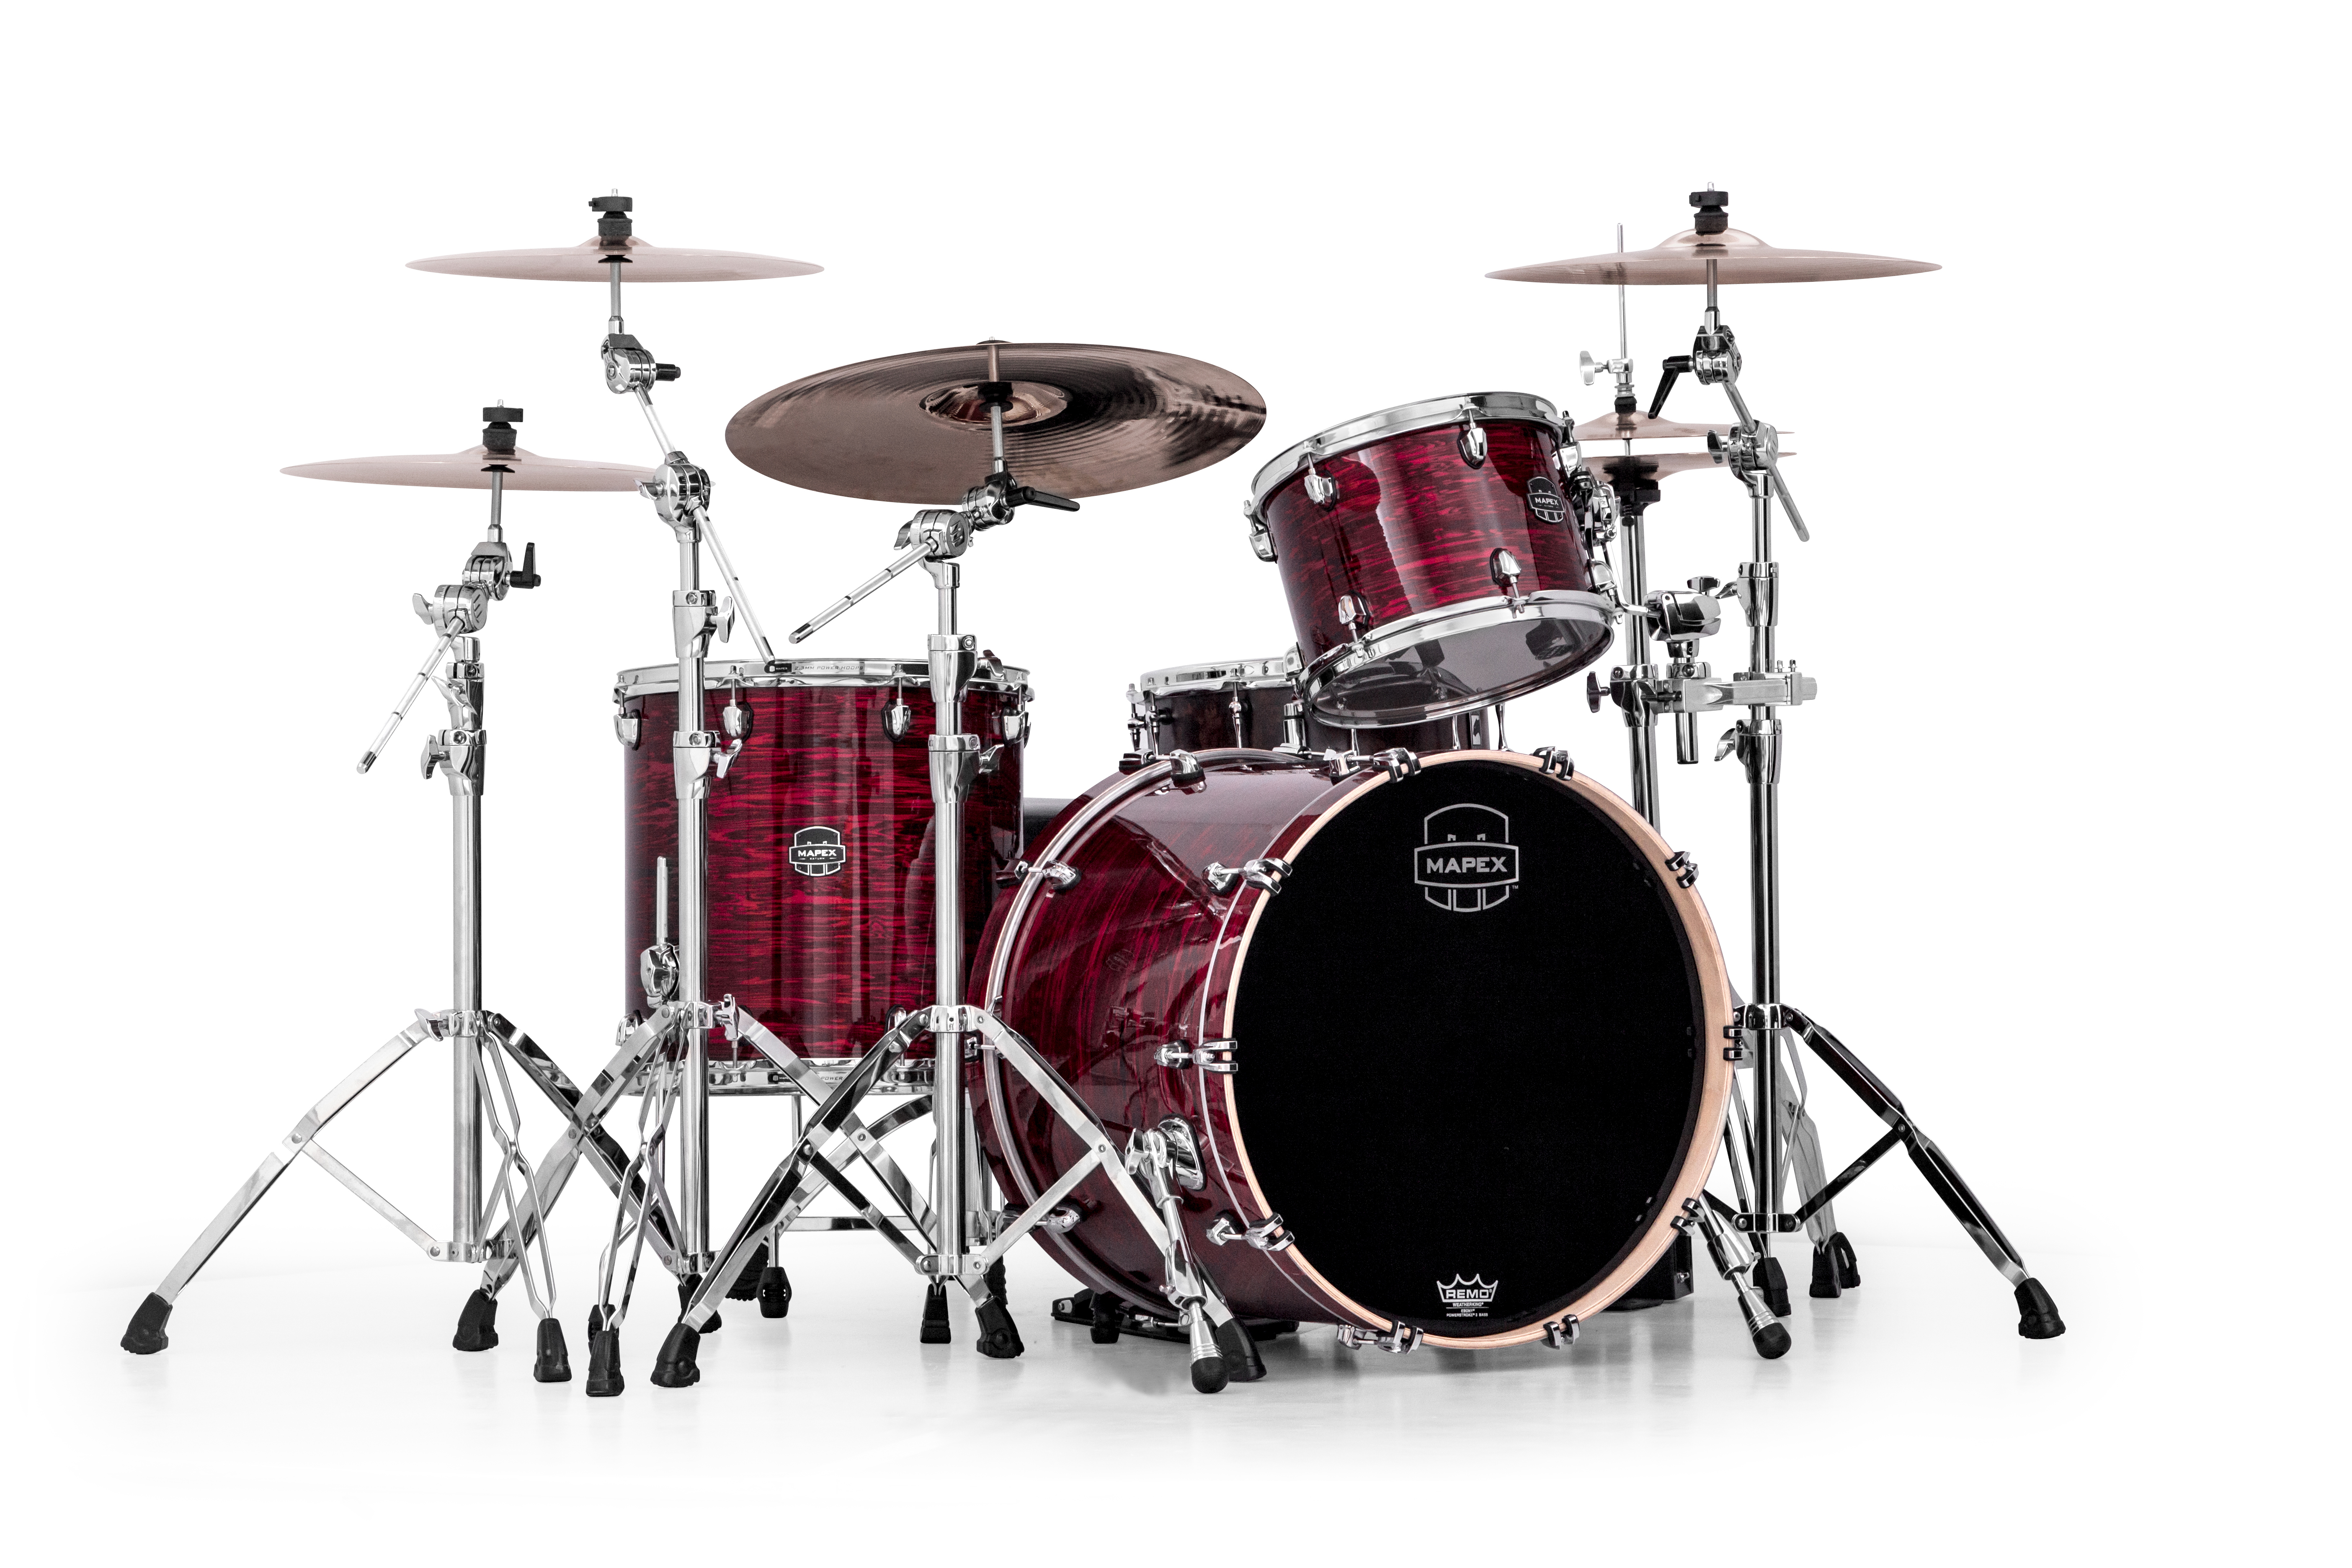 Mapex Saturn V MH Rock 3-piece shell pack with SONIClear Edge - SV426XCL - Merlot Burst